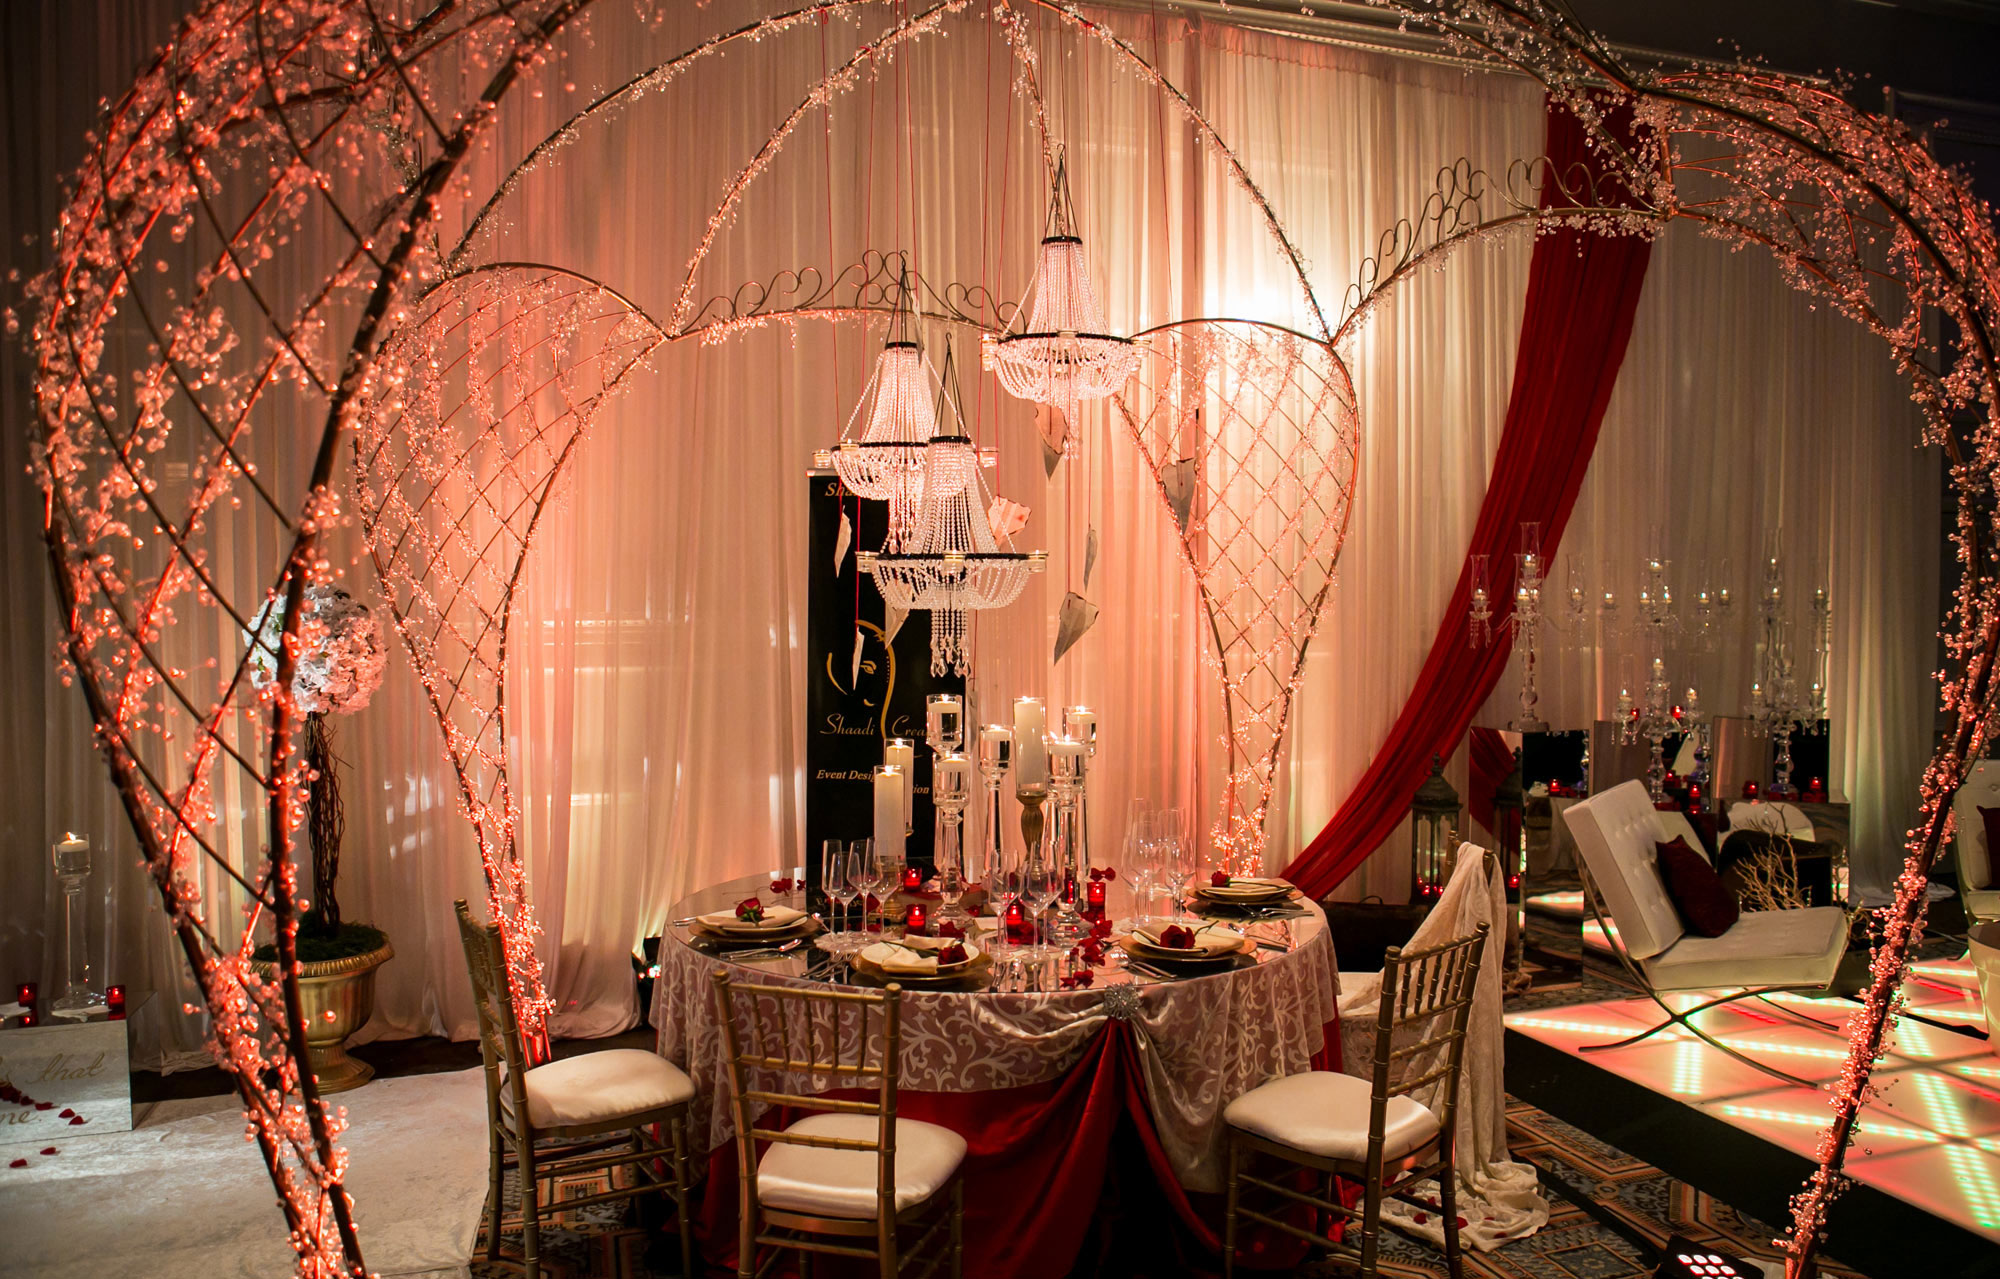 Bridal shows in illinois - Chicago Bridal Shows Bridal Expo Chicago Official Site Tickets To Luxury Wedding Shows Top Chicago Wedding Vendors